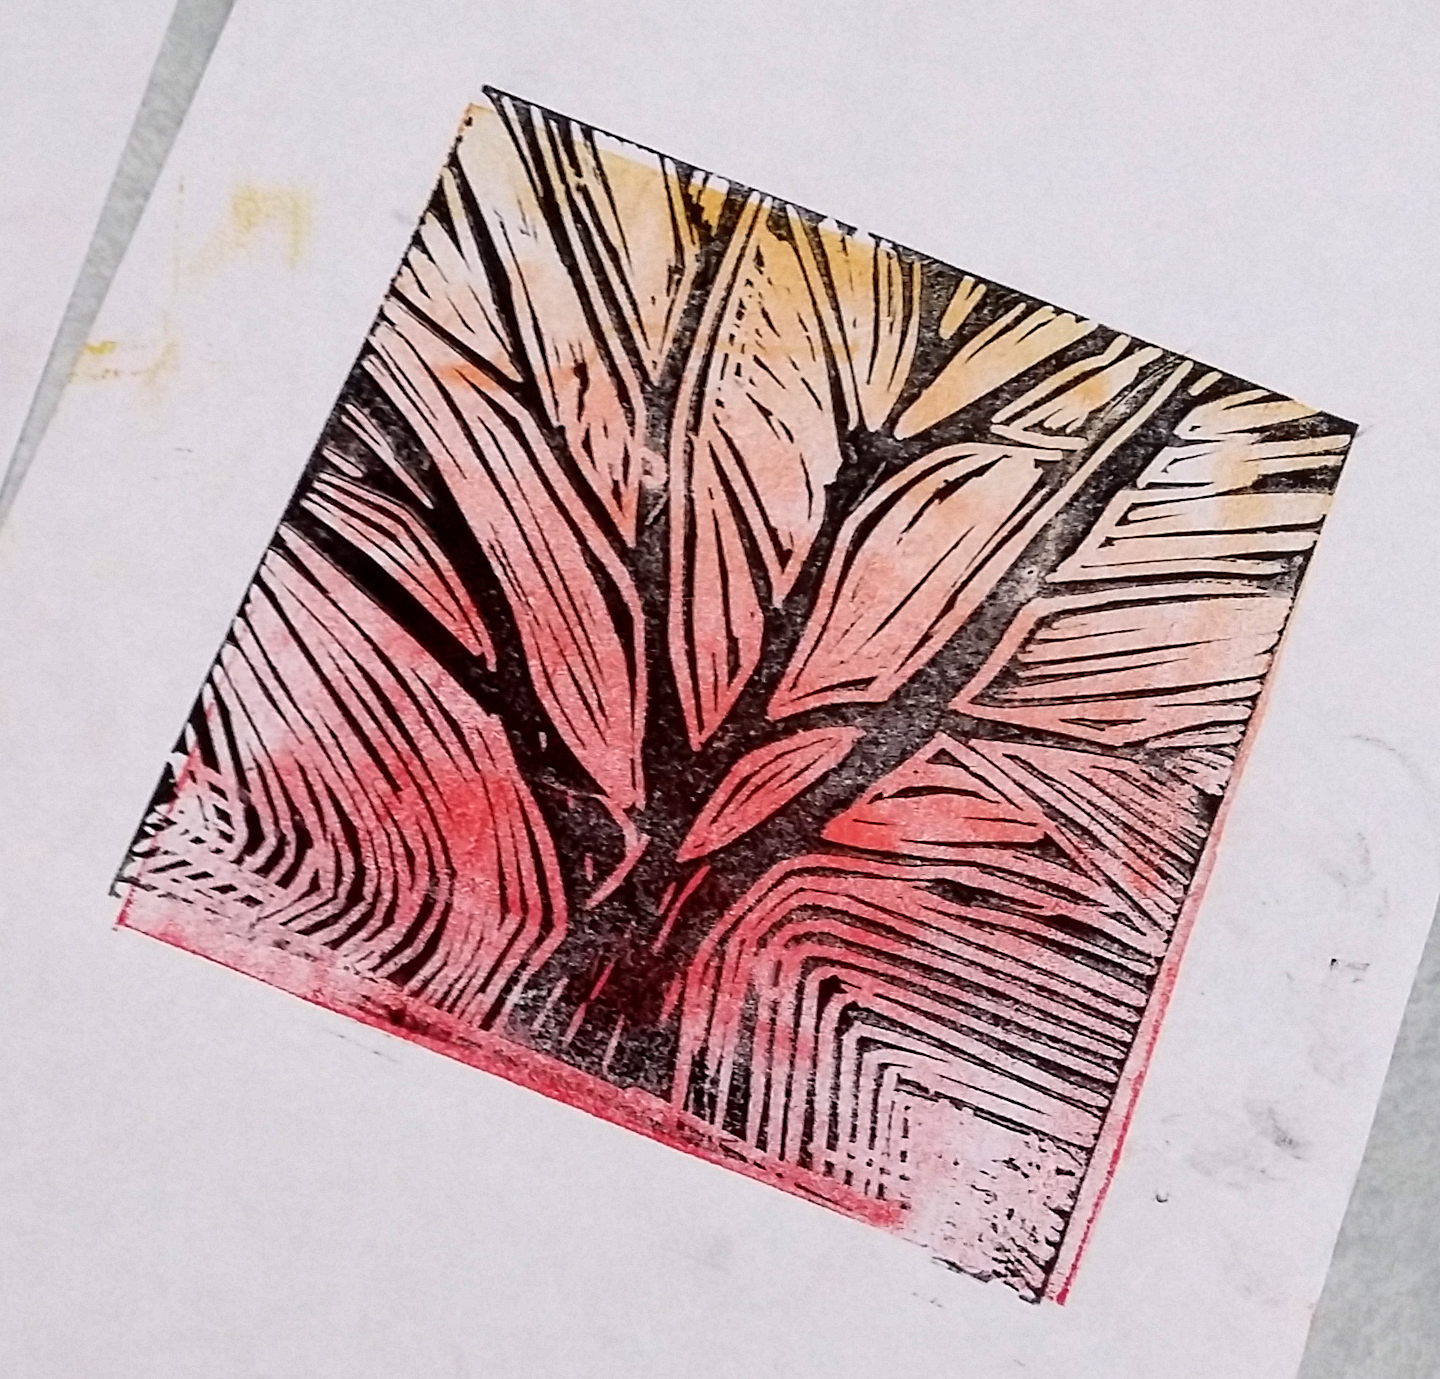 Lino printing workshop with Lanchester Art Group